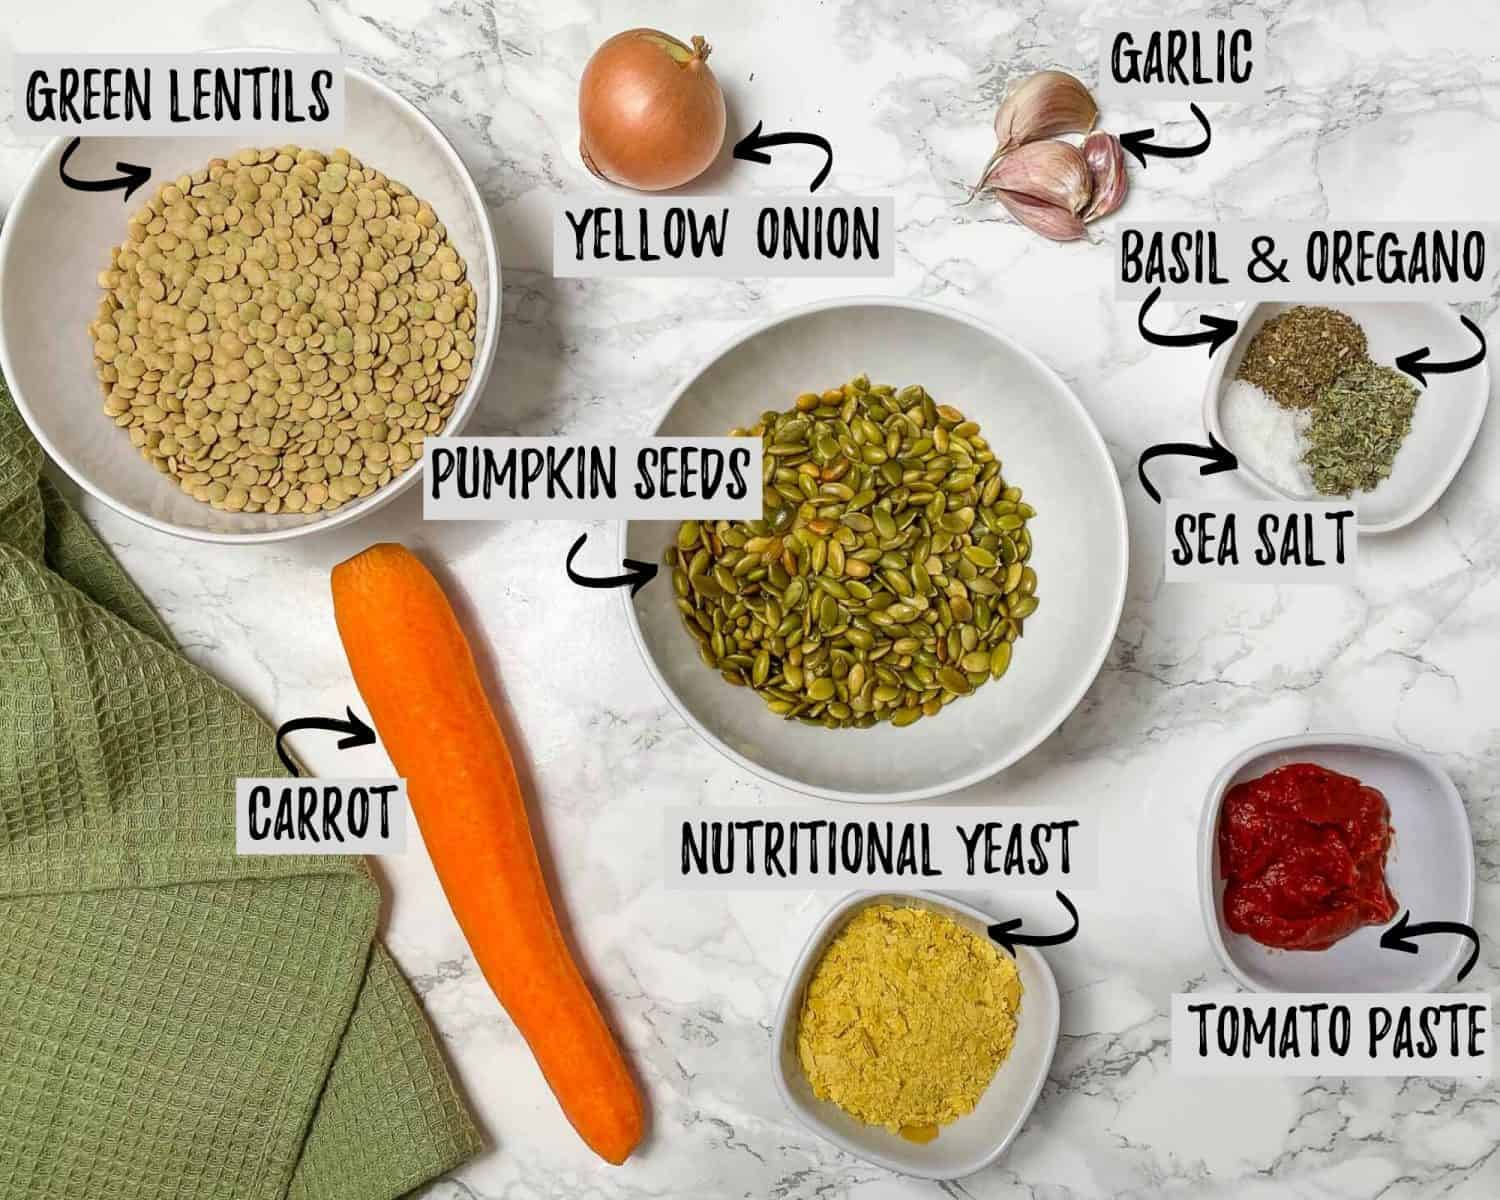 bowl of lentils, pumpkin seeds, nutritional yeast, seasoning, tomato paste, onion, garlic and carrot on marble counter